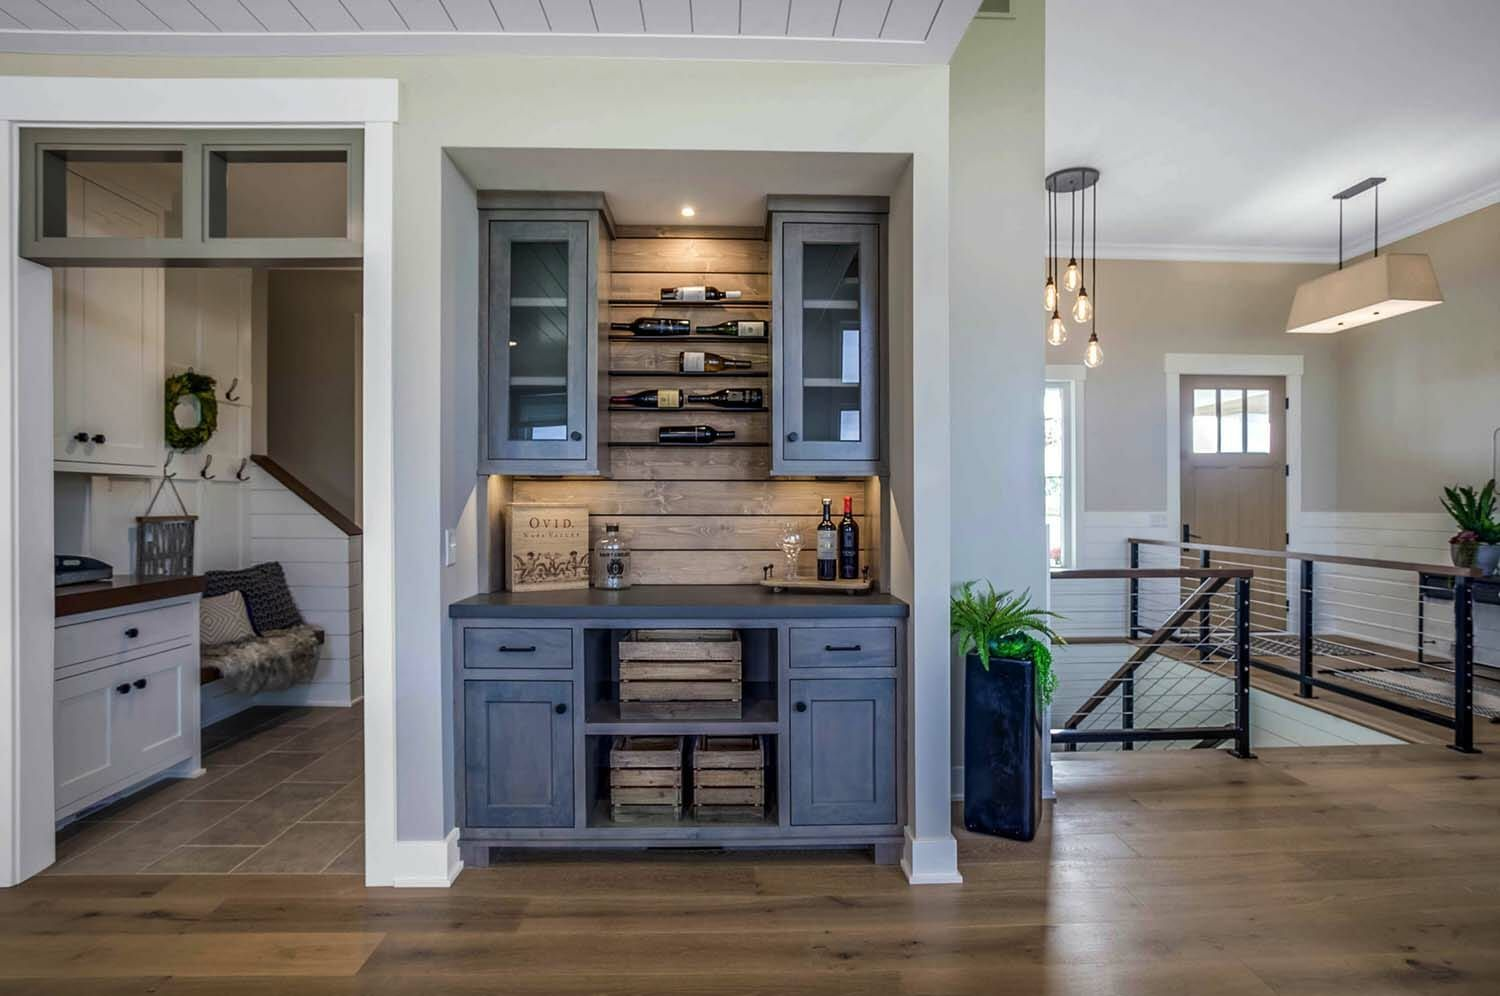 Modern eclectic farmhouse with delightful design features